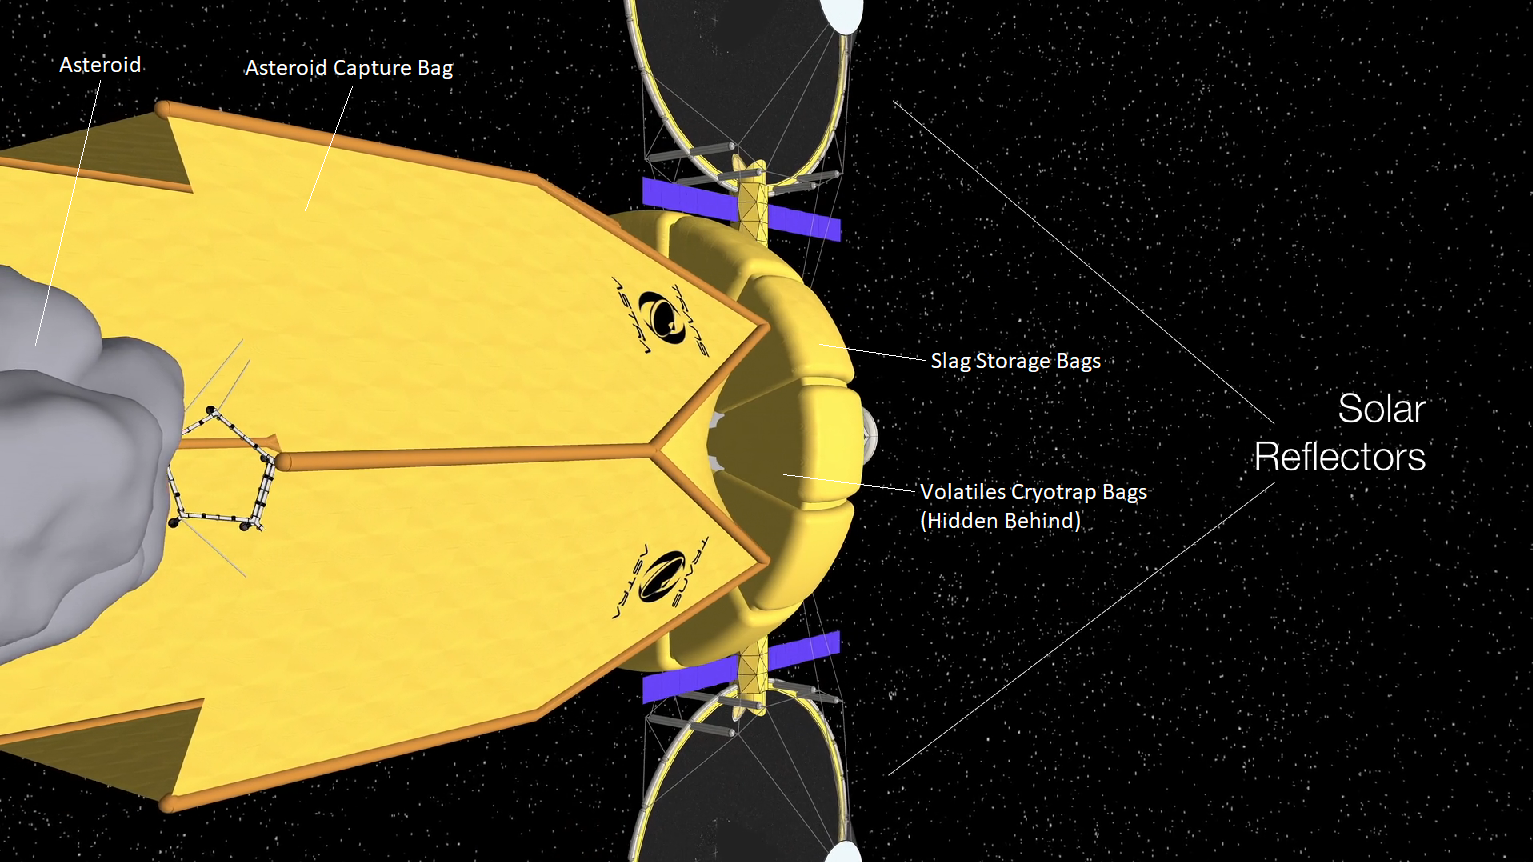 The Queen Bee system in its fully expanded configuration. It can capture asteroids that are nearly 40m in diameter. Credit: TransAstra Corporation